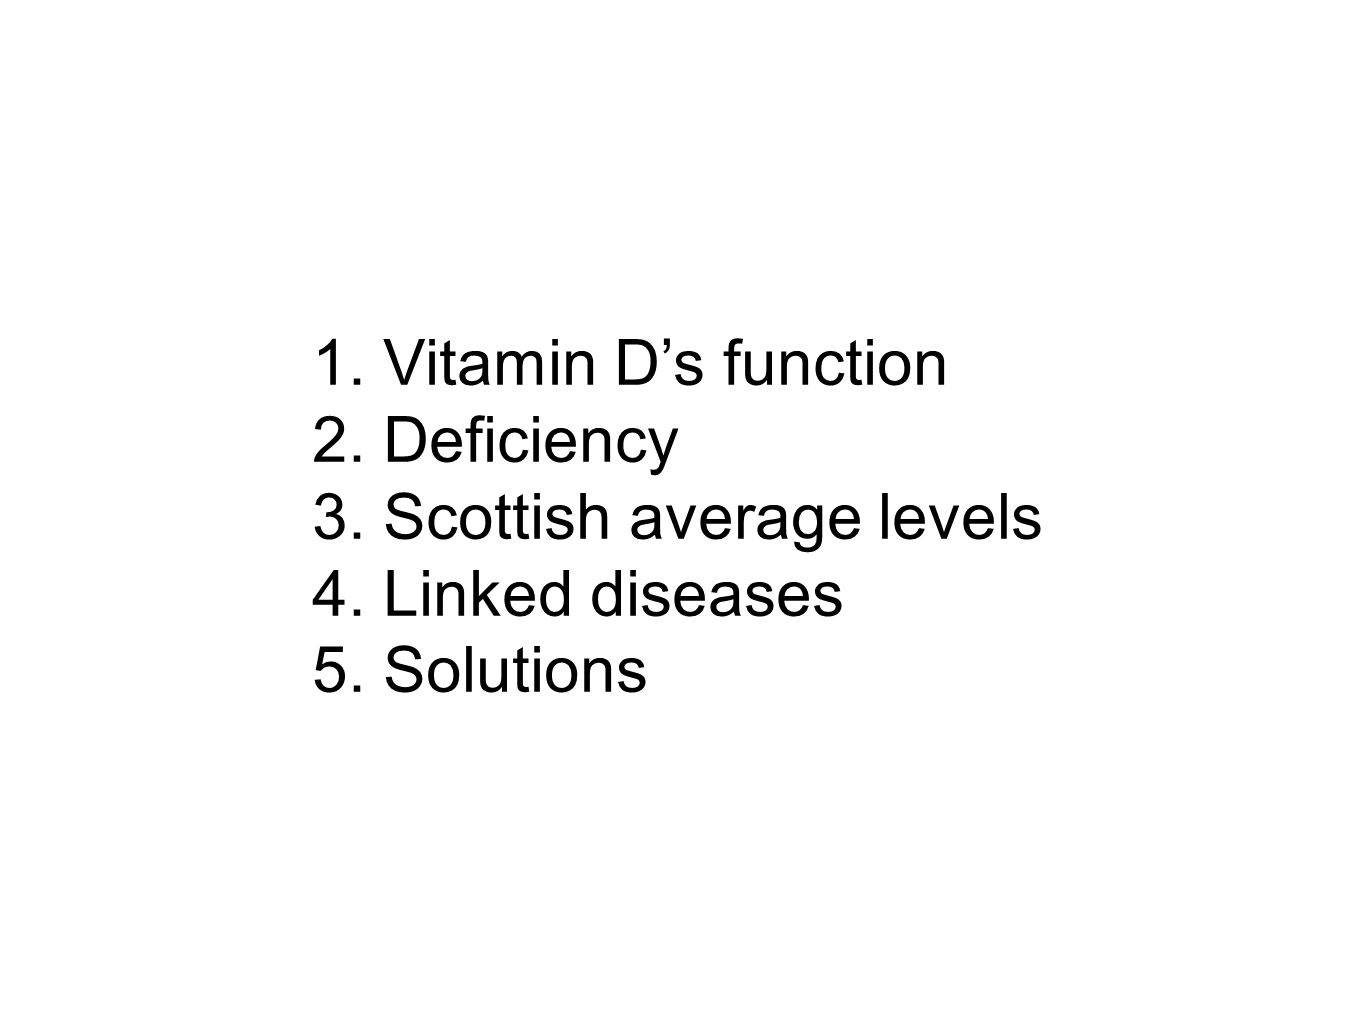 1. Vitamin Ds function 2. Deficiency 3. Scottish average levels 4. Linked diseases 5. Solutions